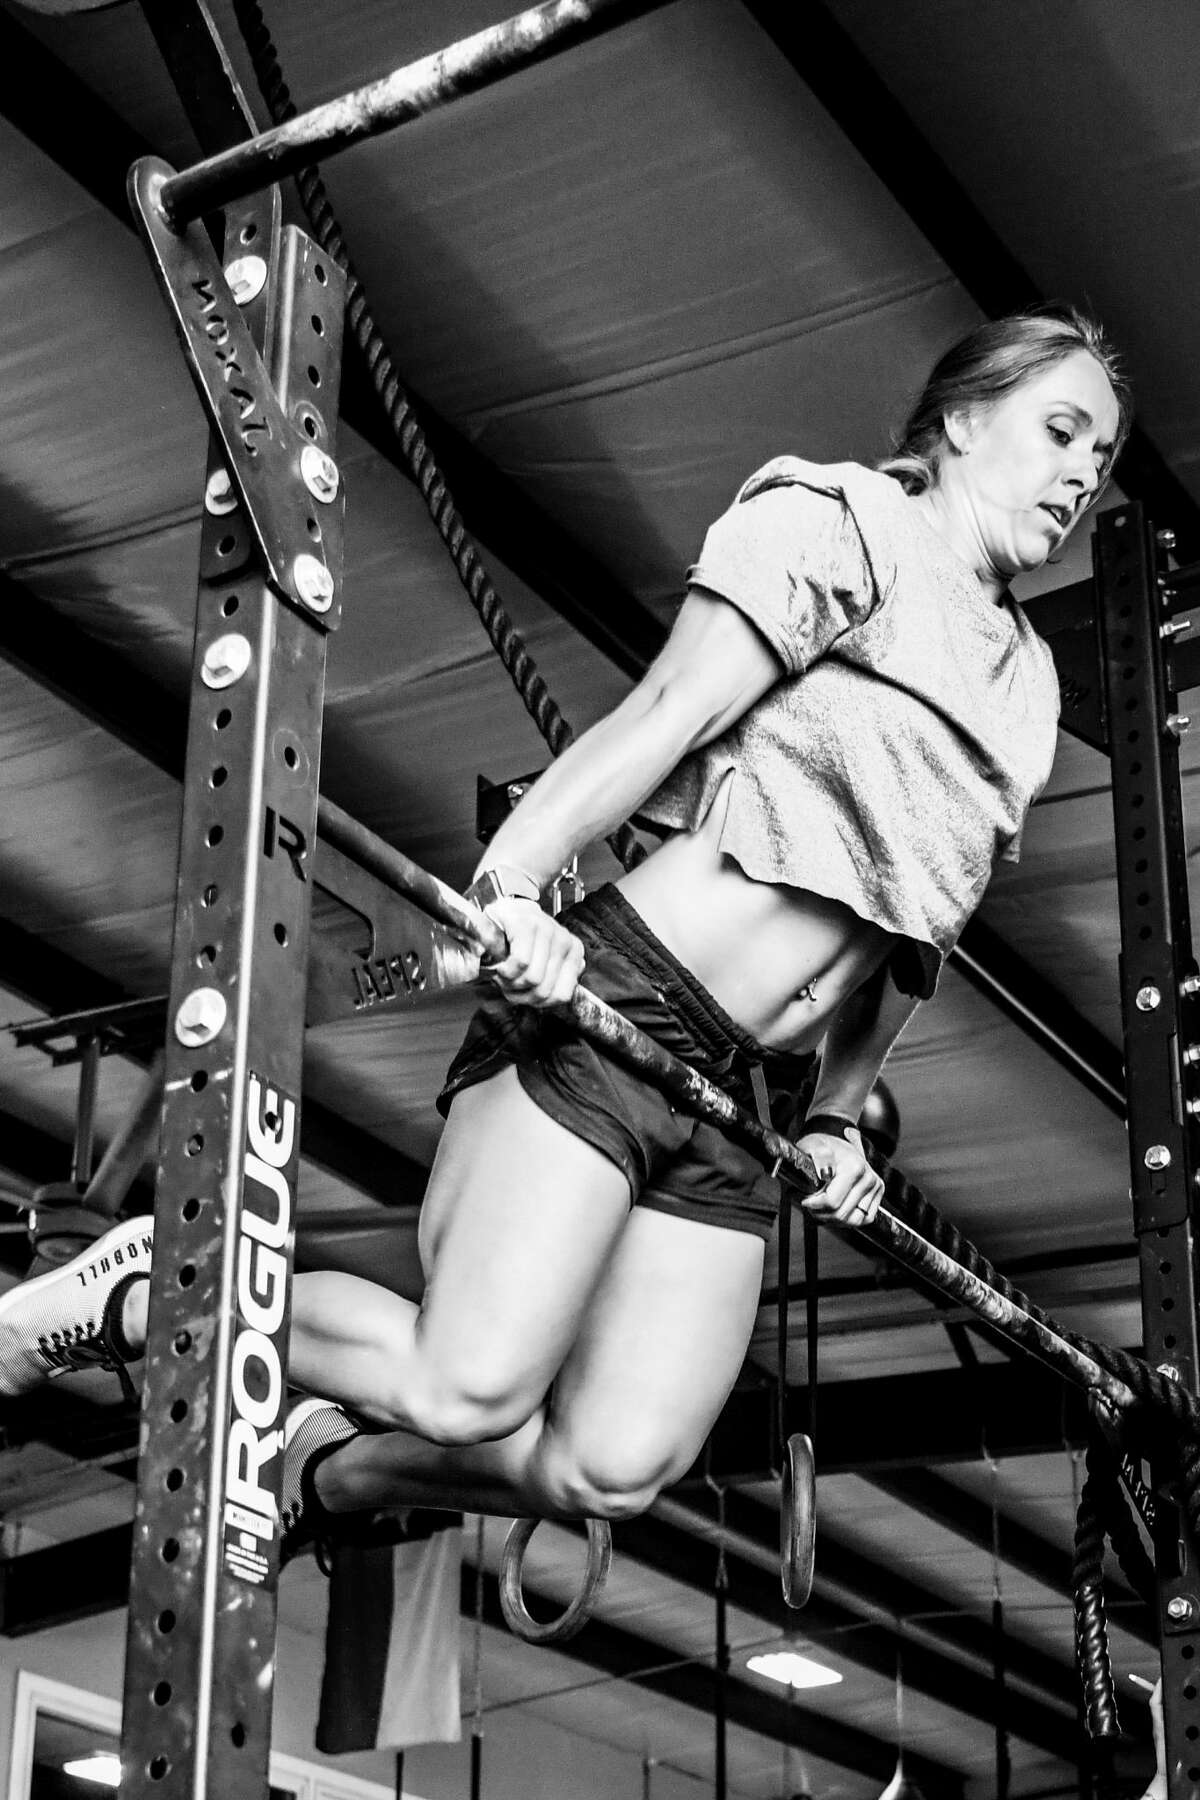 Arielle Loewen is seen her training at Renewed Strength Crossfit. Loewen has qualified for the 2021 Crossfit Games taking place July 27-Aug. 1 in Madison, Wisc.